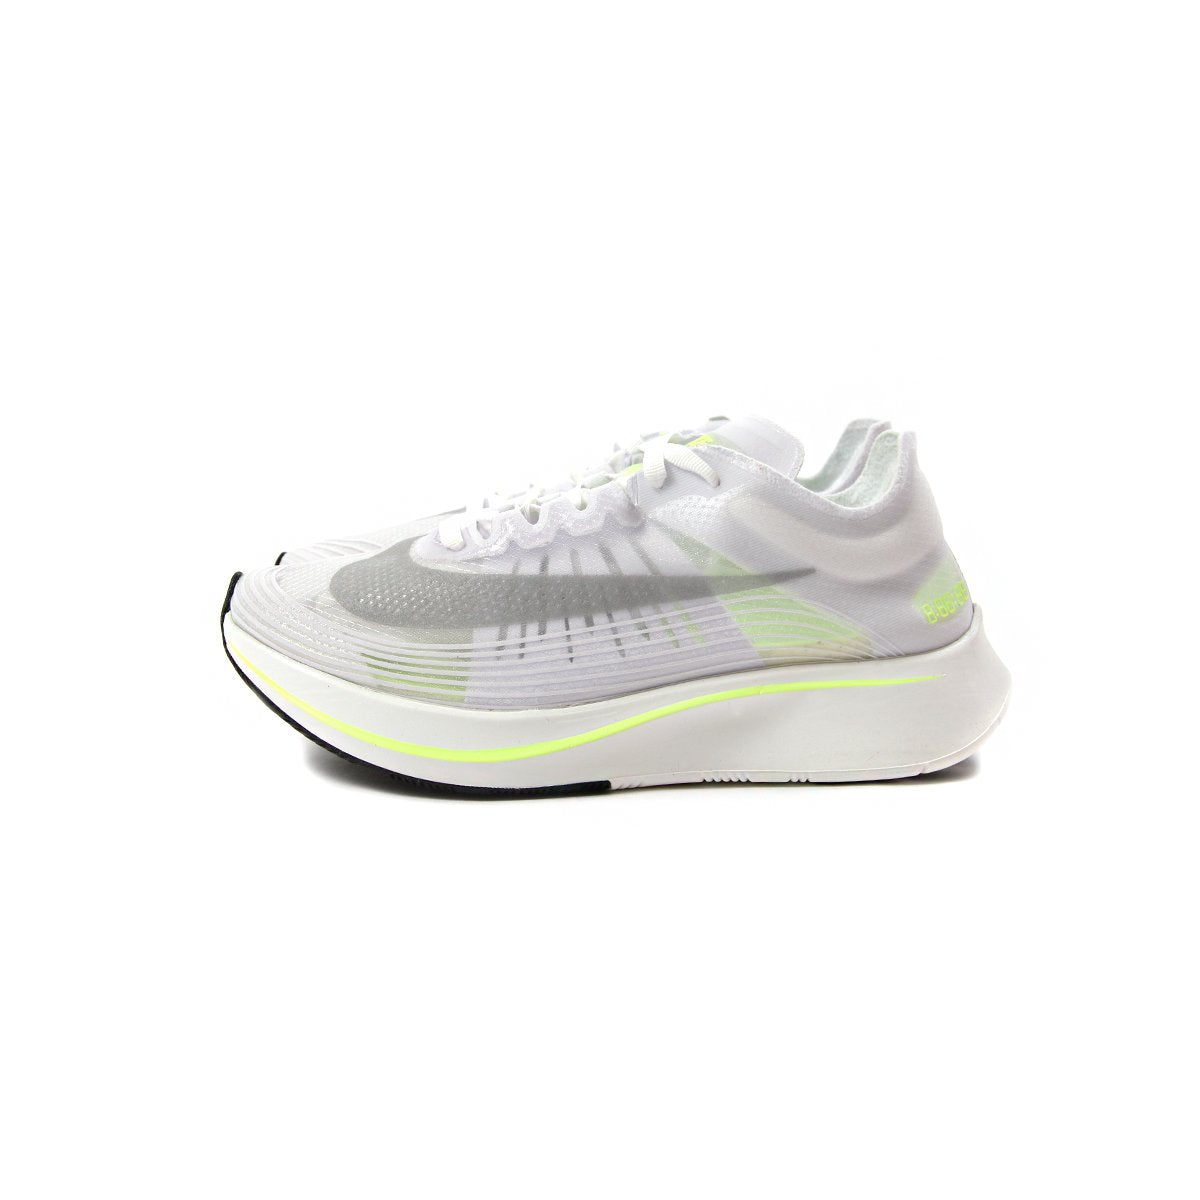 cheap for discount c33a3 e0181 ConceptsIntl  Nike Zoom Fly SP (WhiteVolt Glow-Summit White)